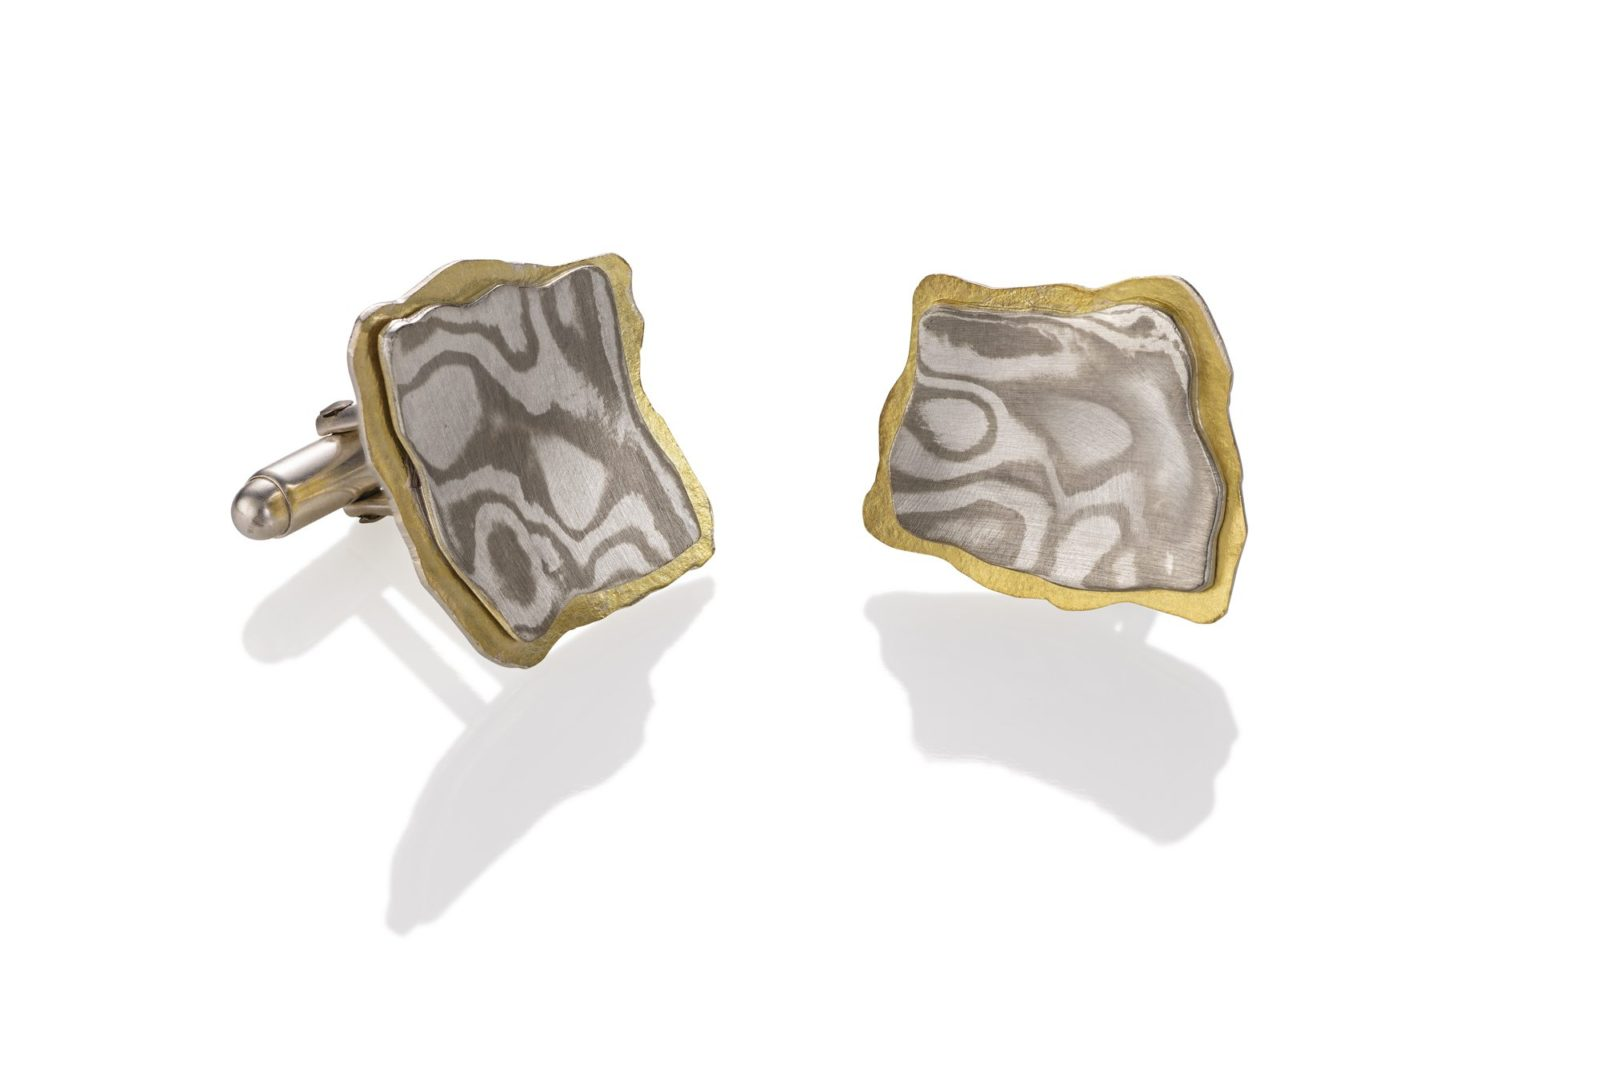 lisa jane grant mokume mixed metal jewelry gold 14k 18k yellow Palladium White gold contemporary men's jewelry jewellery Rockport Maine handmade unique